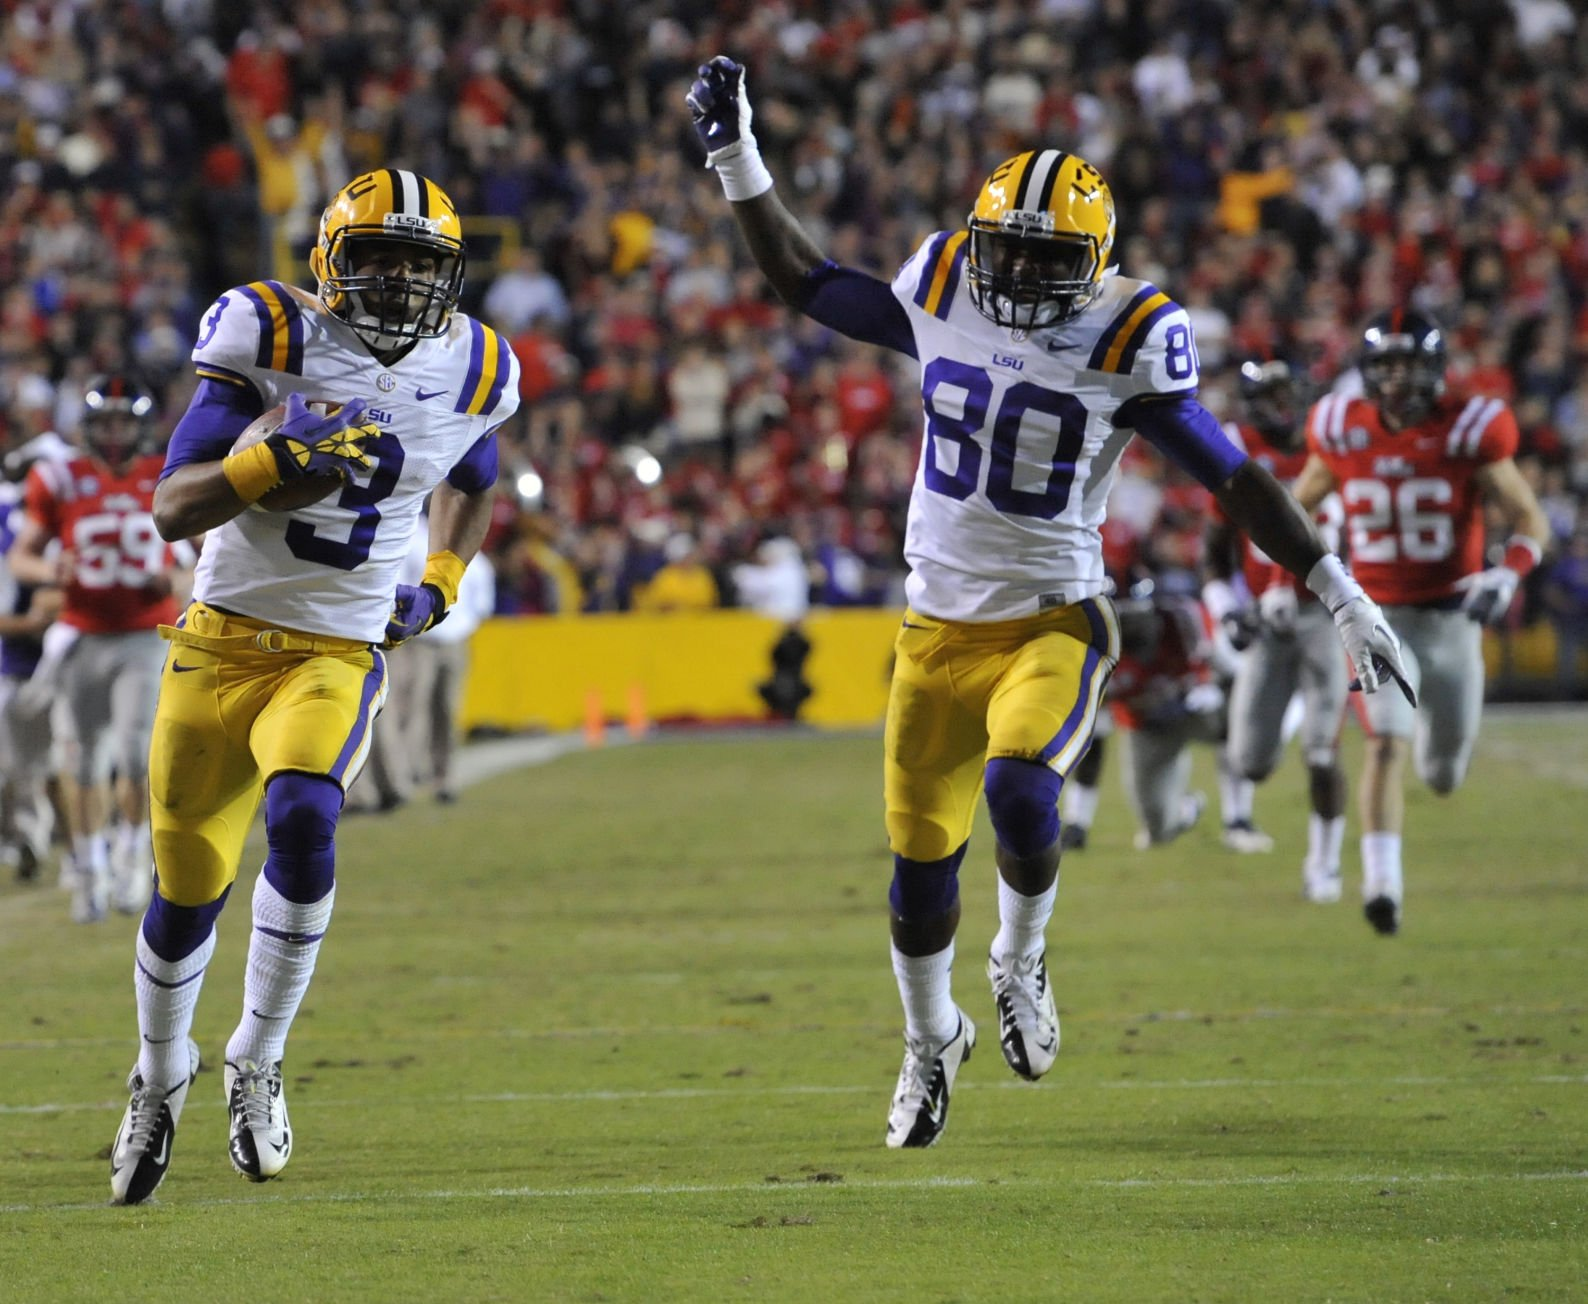 LSU football star Odell Beckham Jr runs for a TD